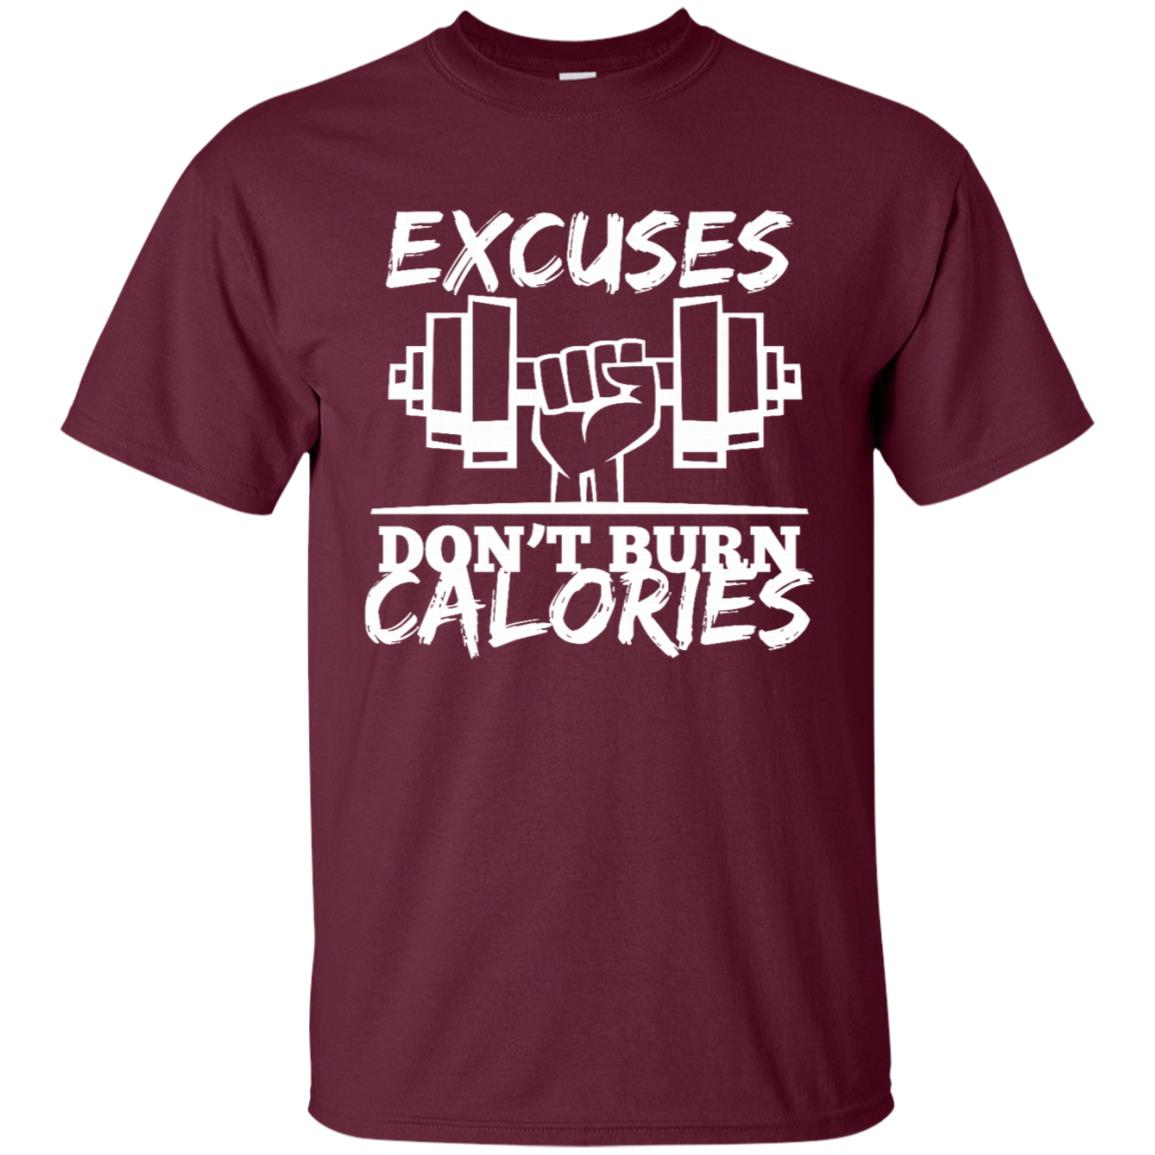 Excuses Don't Burn Calories Funny Gym Fitness Unisex Short Sleeve